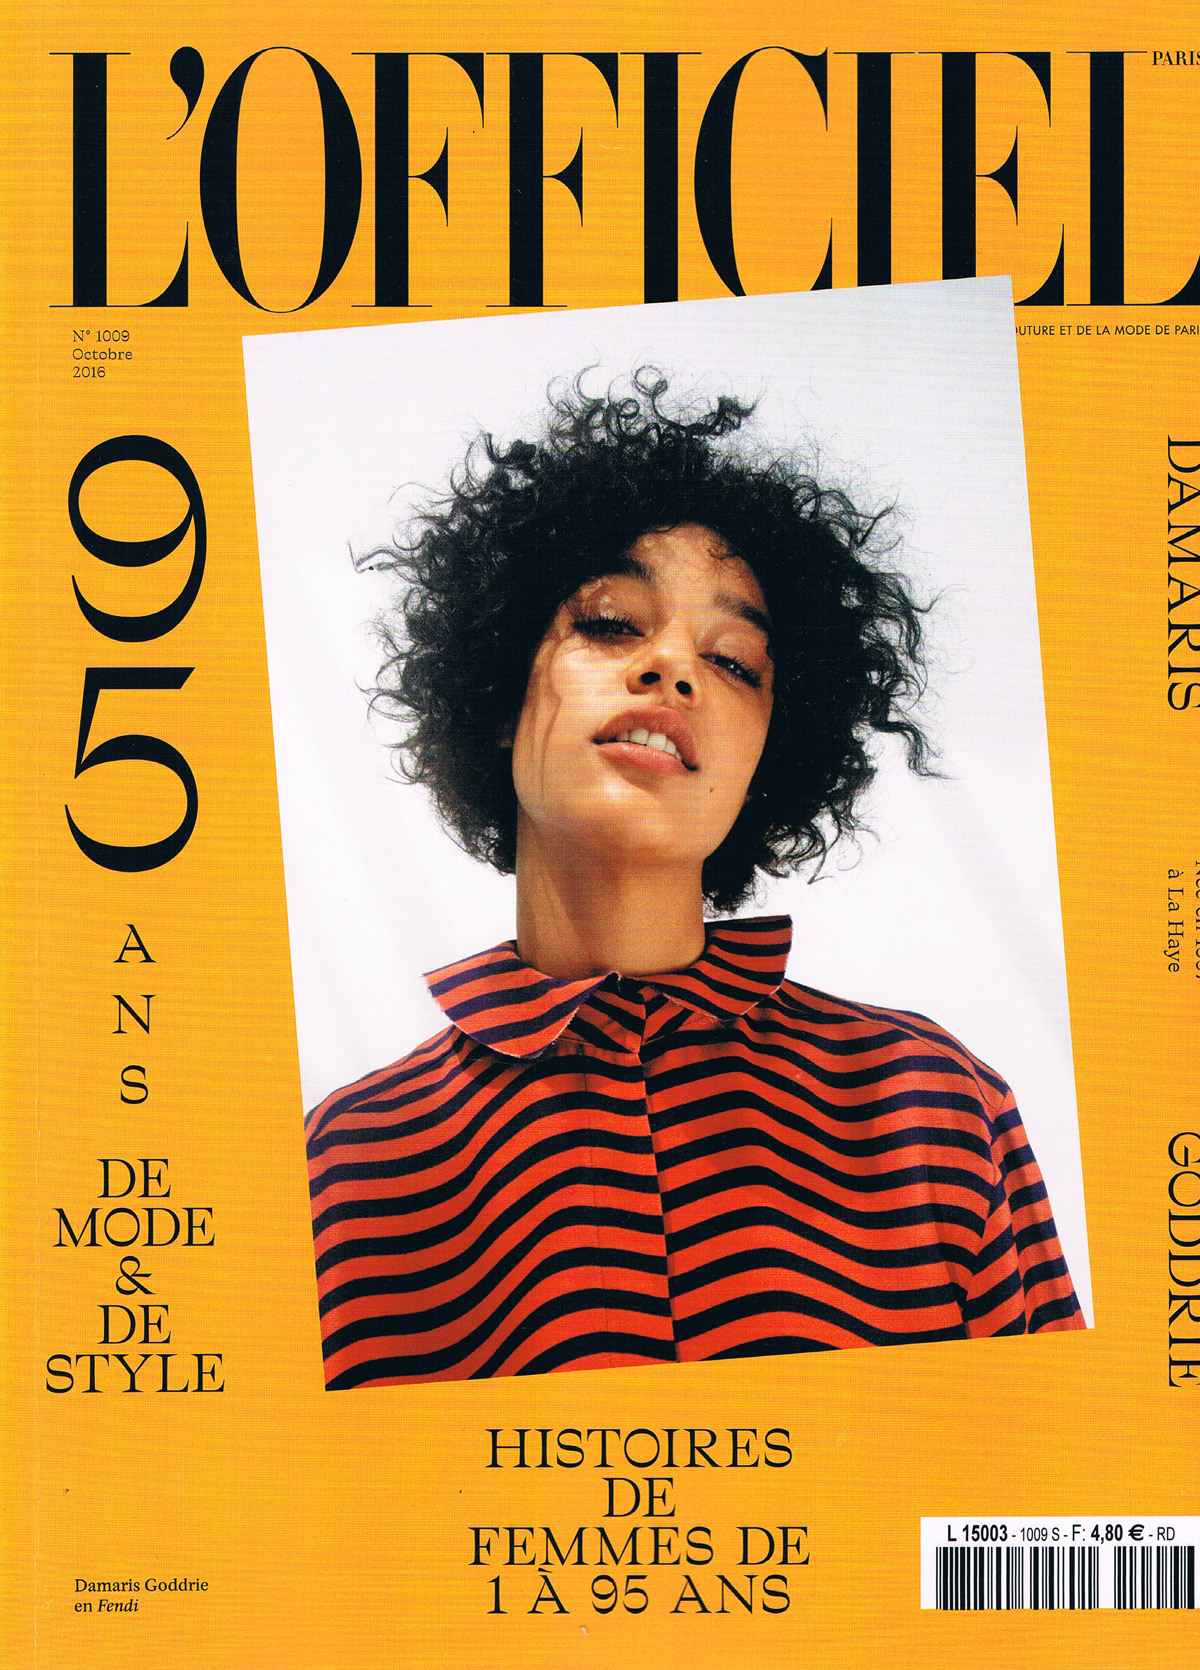 L'Officiel Octobre 2016